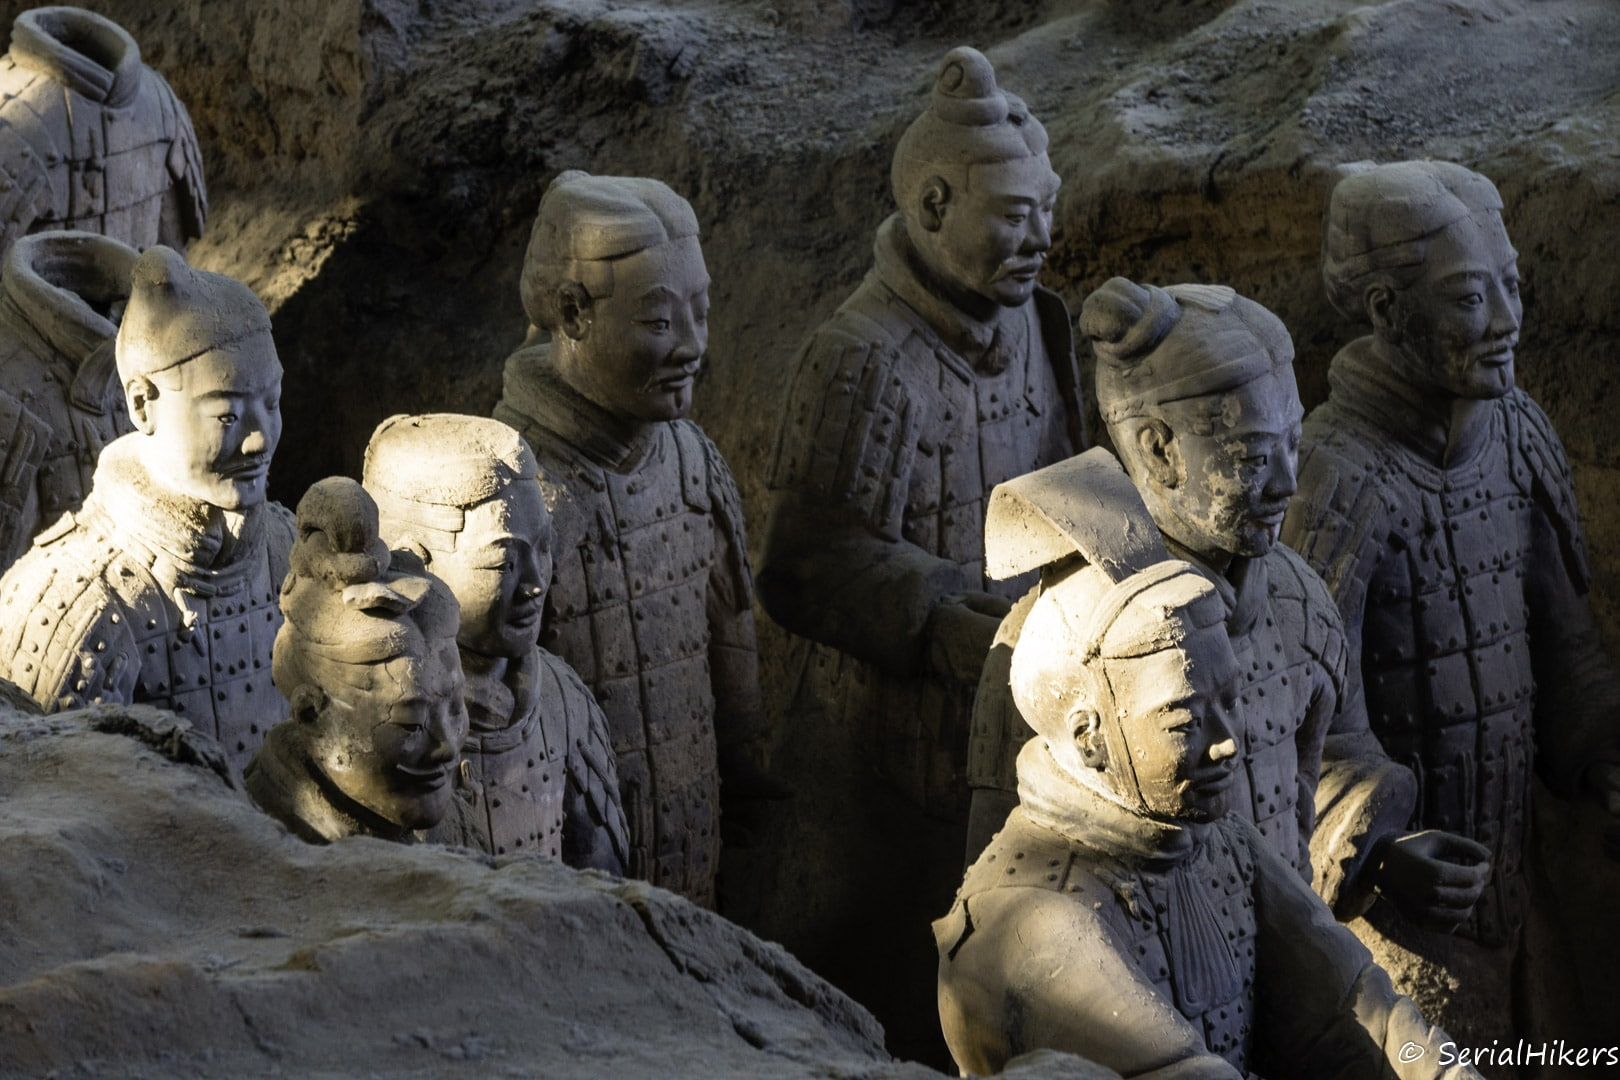 SerialHikers stop autostop world monde tour hitchhiking aventure adventure alternative travel voyage sans avion no fly china chine shaanxi xian terracotta army armee terre cuite